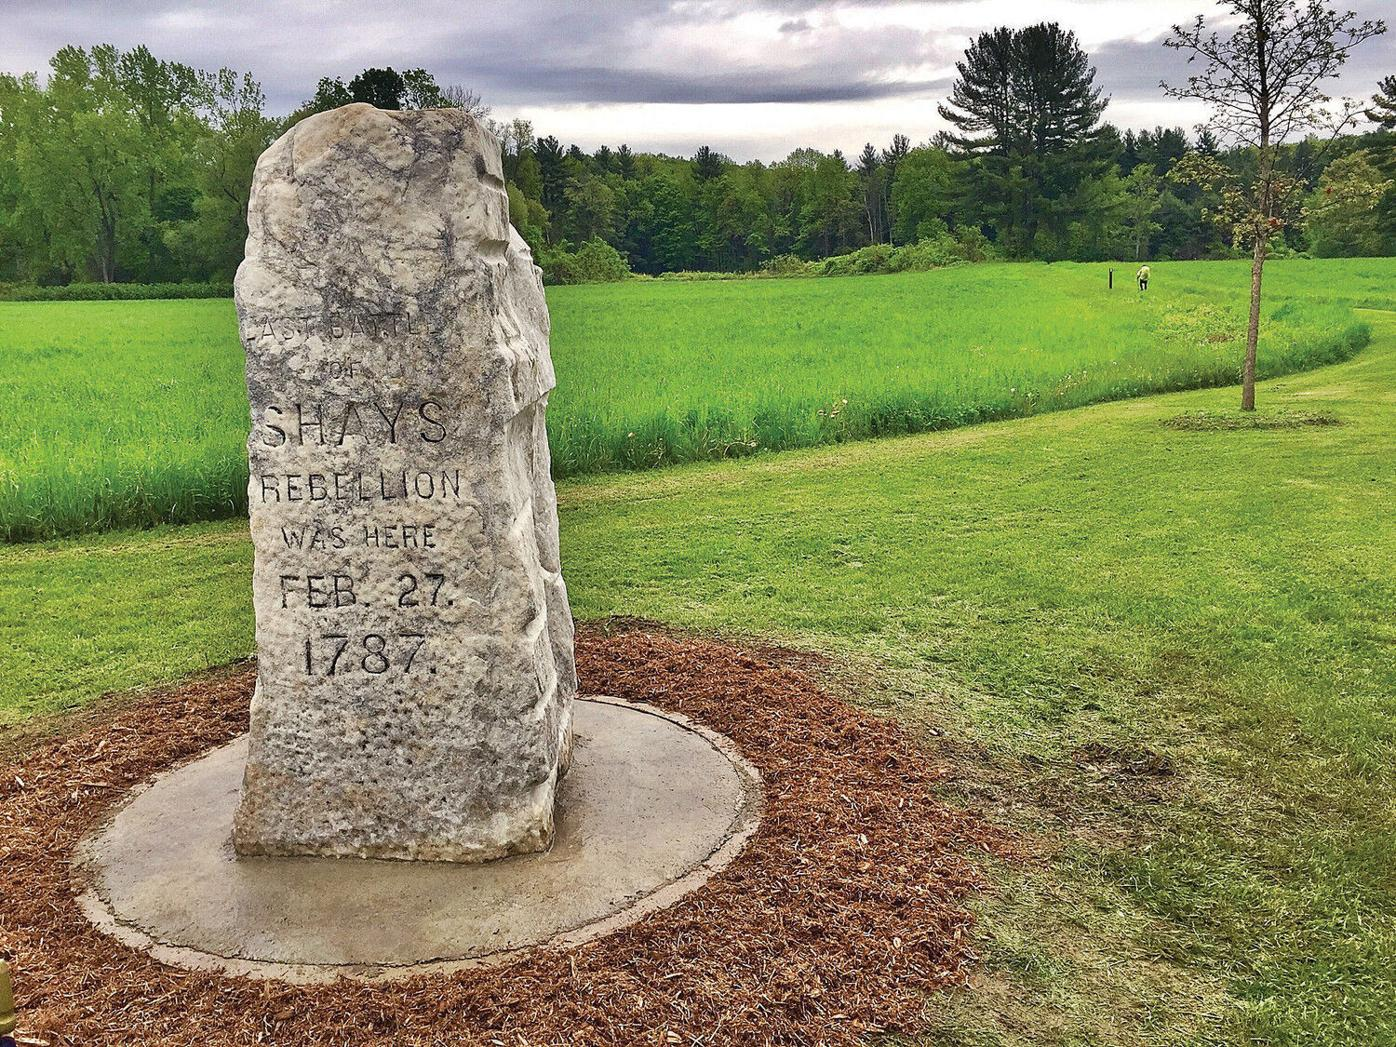 Preservationist touches up Shays' Rebellion monument